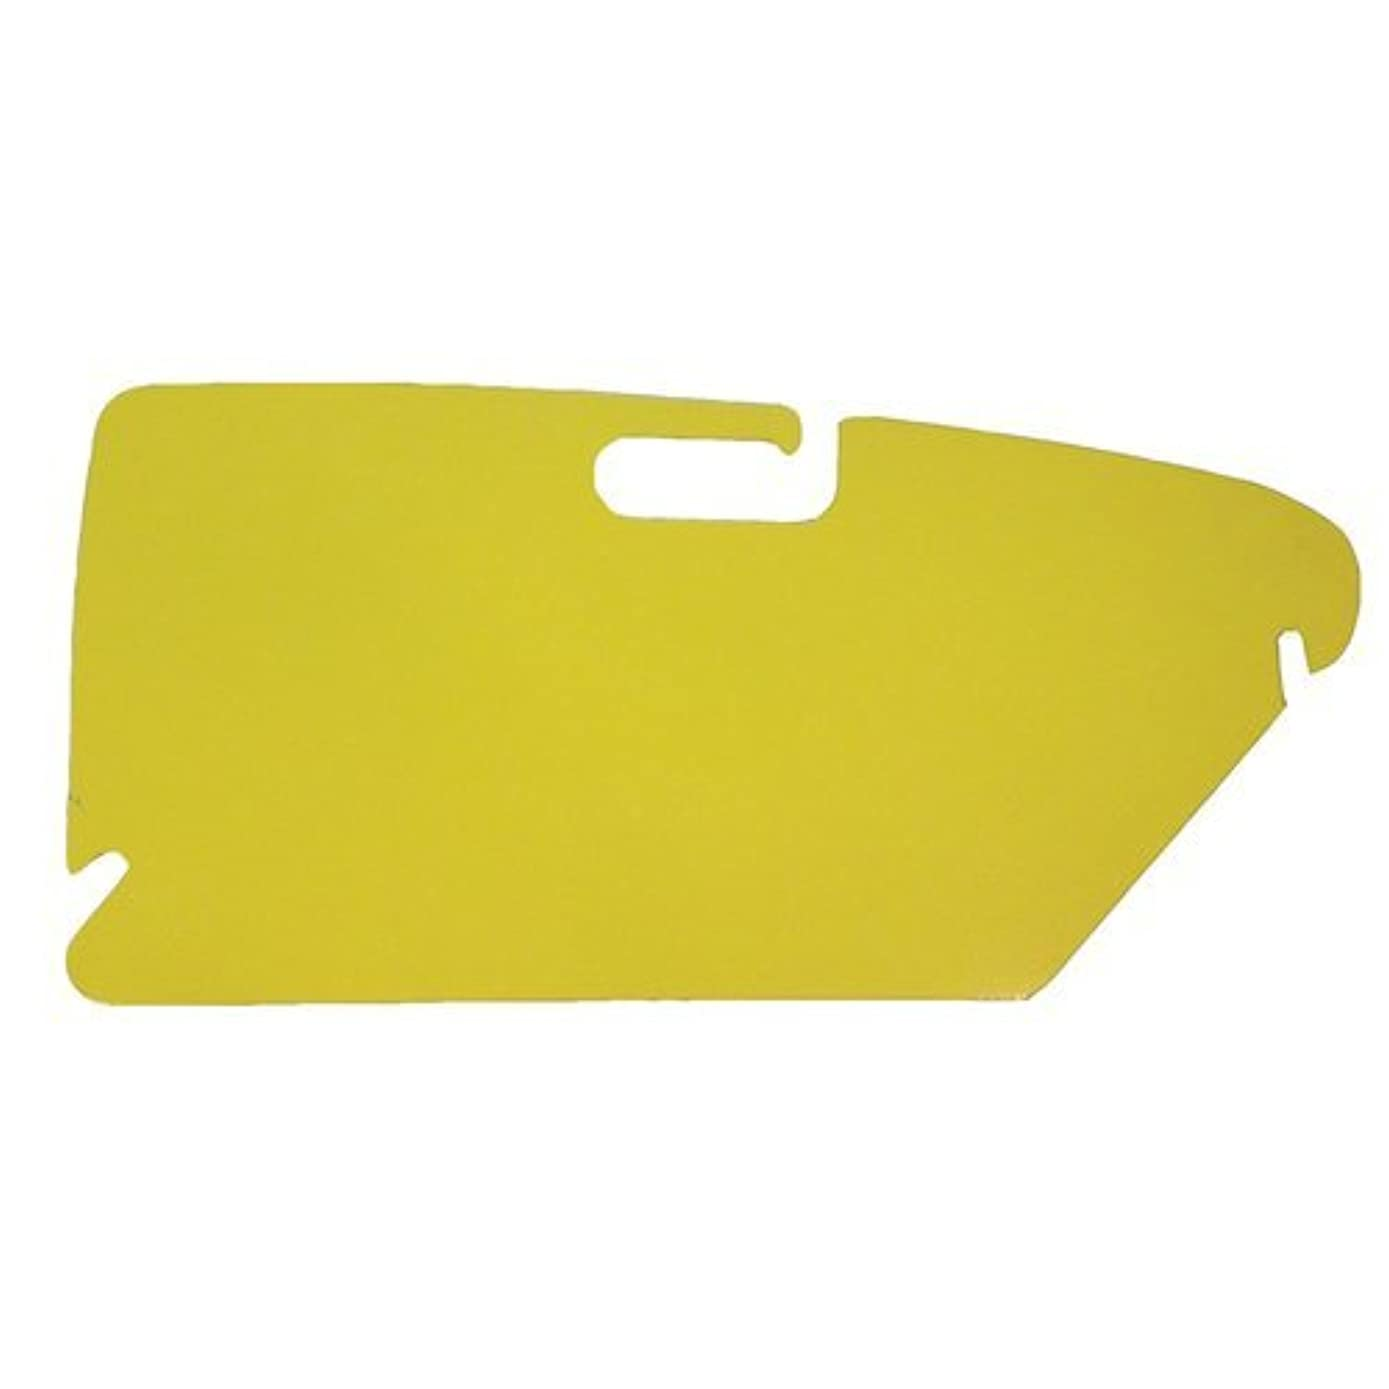 All States Ag Parts Weight Plate New Holland L223 L425 L555 L225 C238 L554 C232 L230 L553 L783 L445 L781 L452 L454 L785 L455 L451 84332300 Case TV380 SR250 SV300 SR220 SV250 TR320 646974